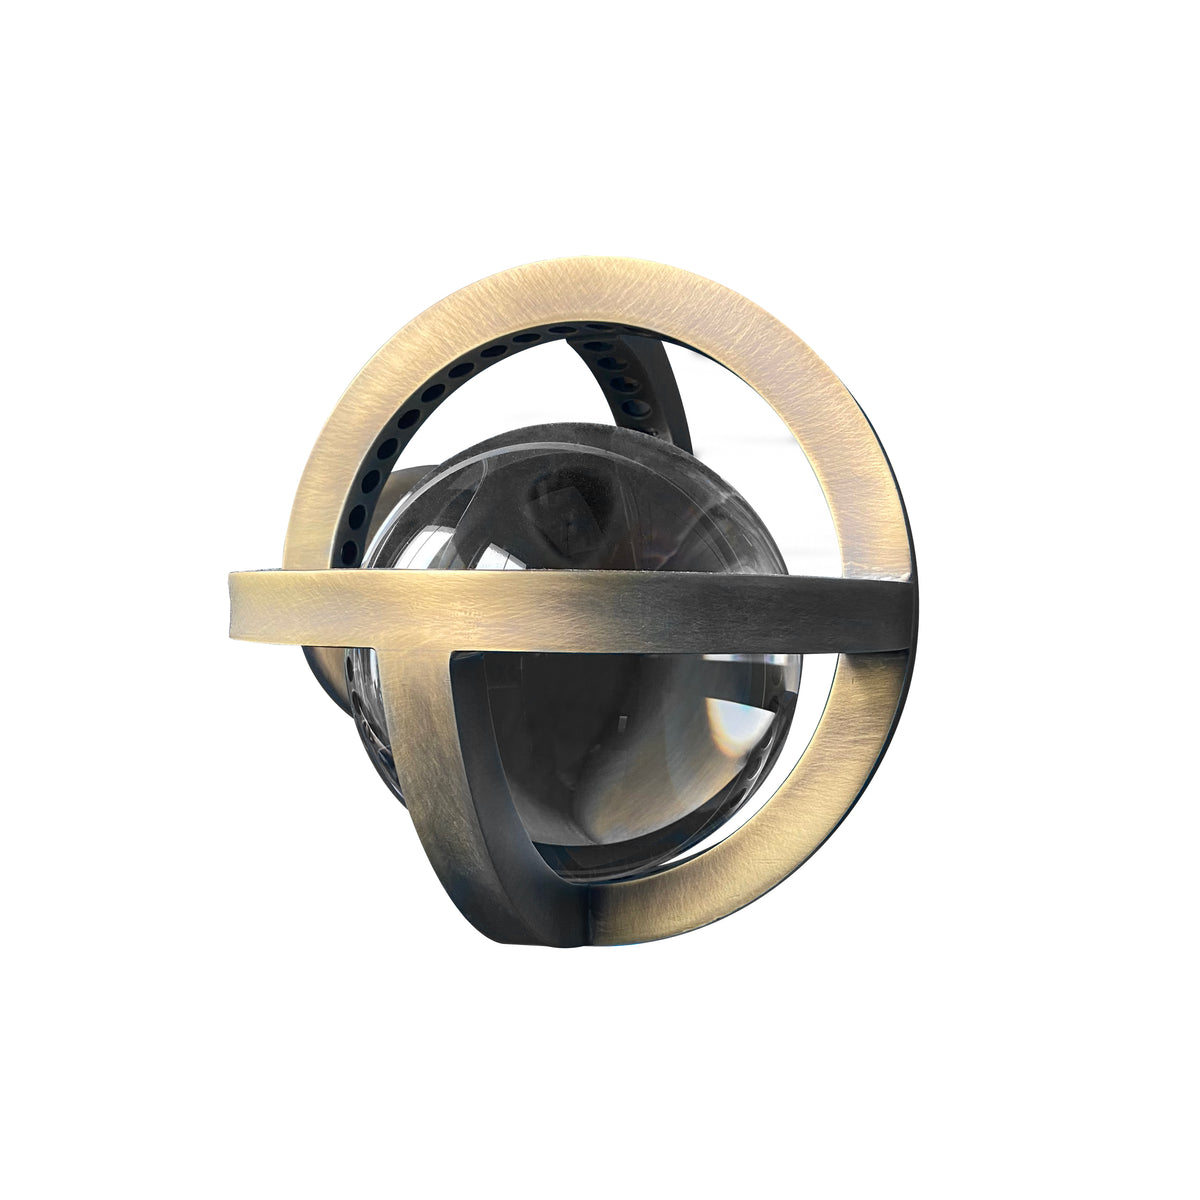 PLANETARIA WALL LIGHT - DARK BRASS